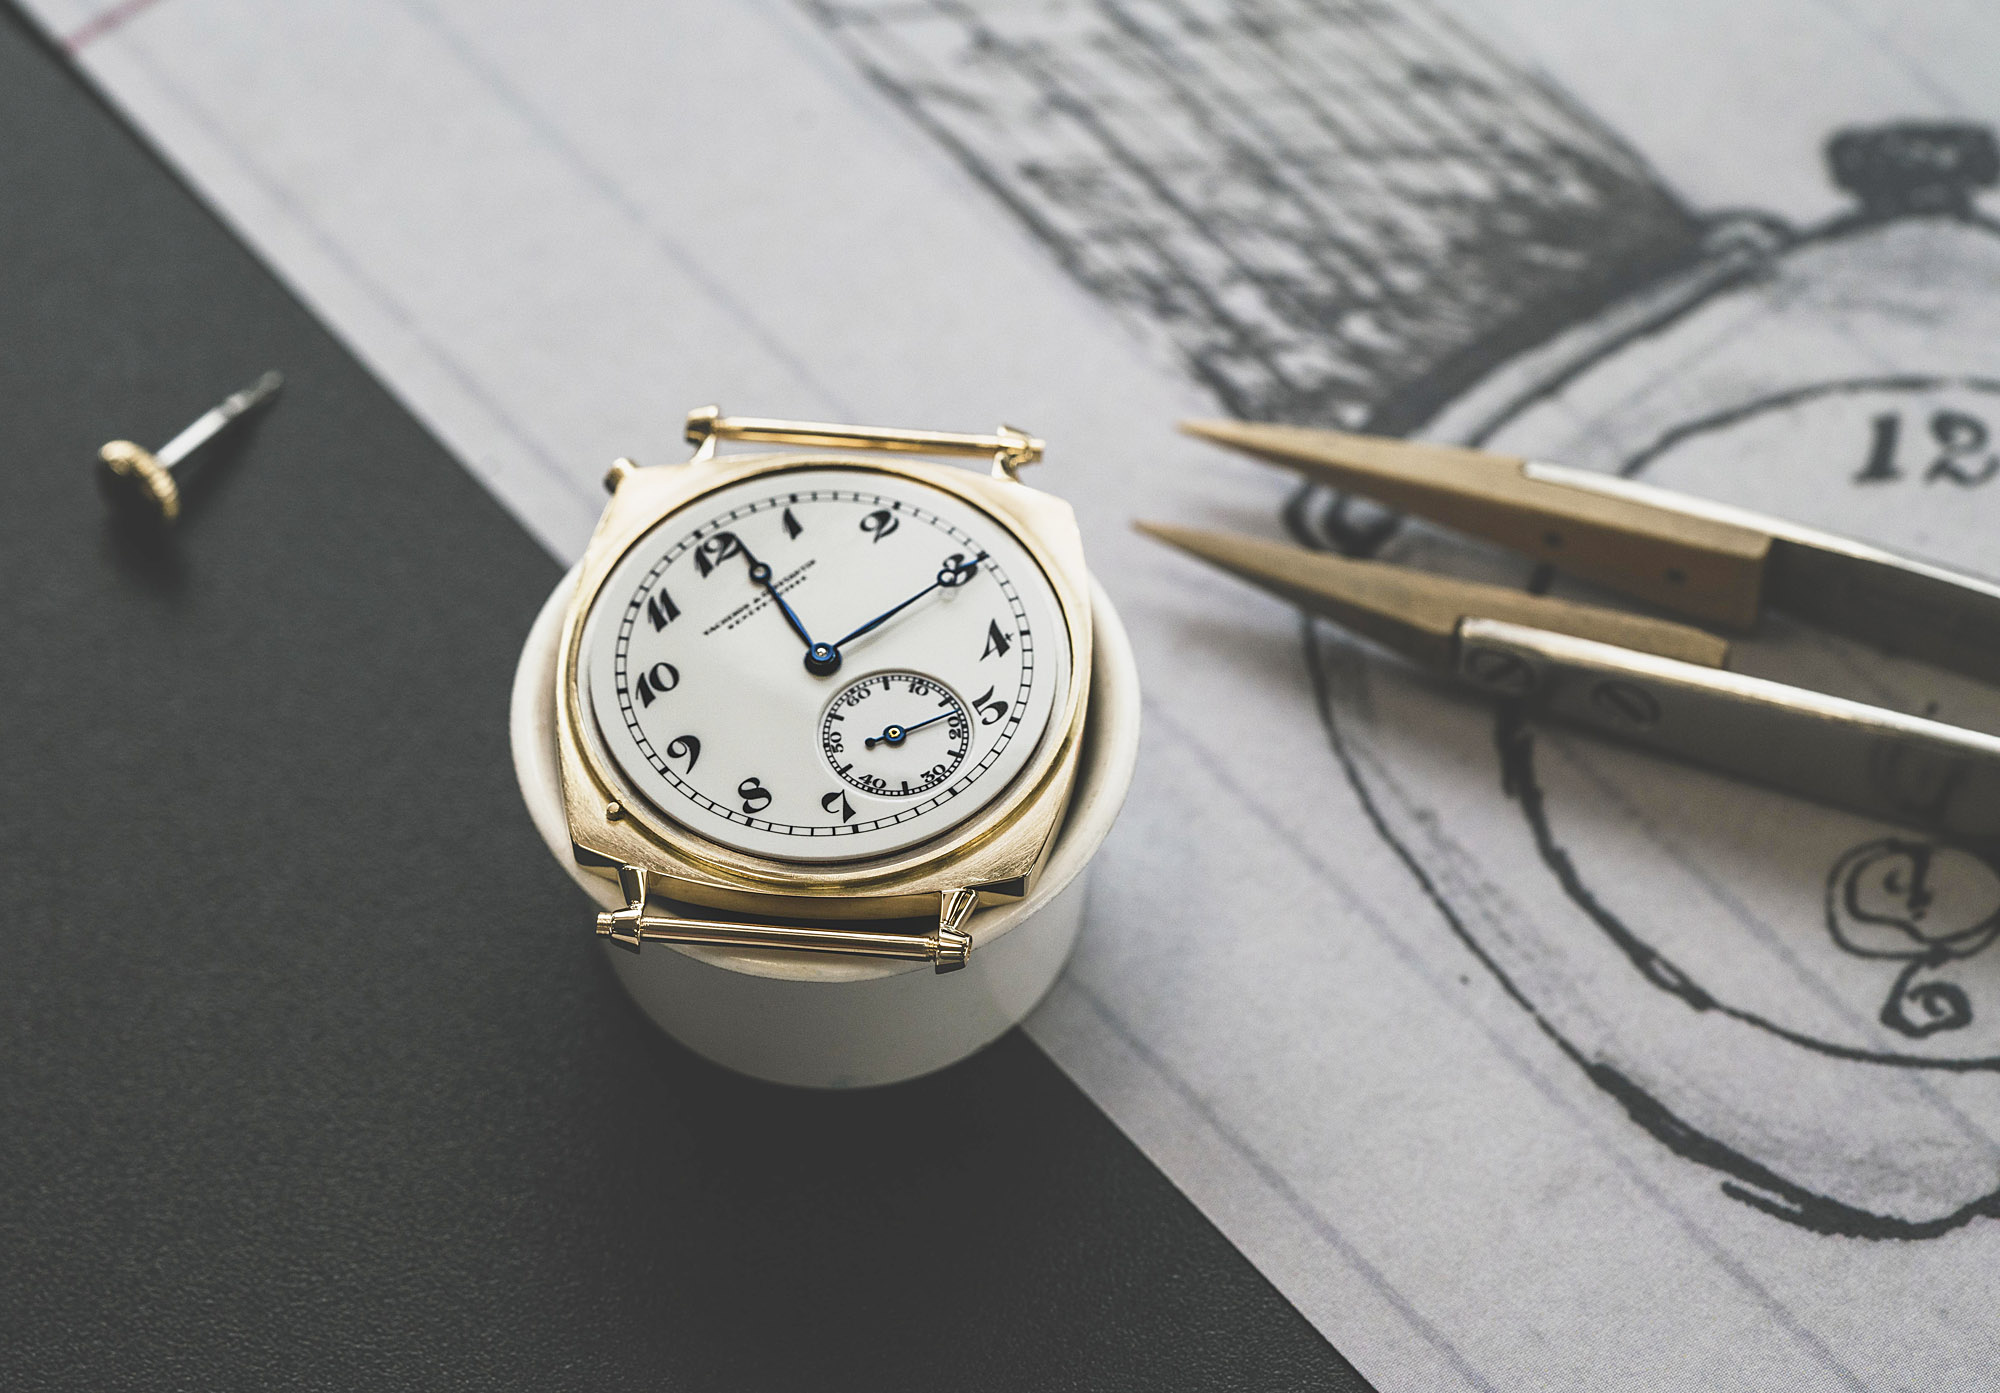 Vacheron Constantin American 1921 Piece Unique Hand Crafted 3N Yellow Gold Case Goldsmith